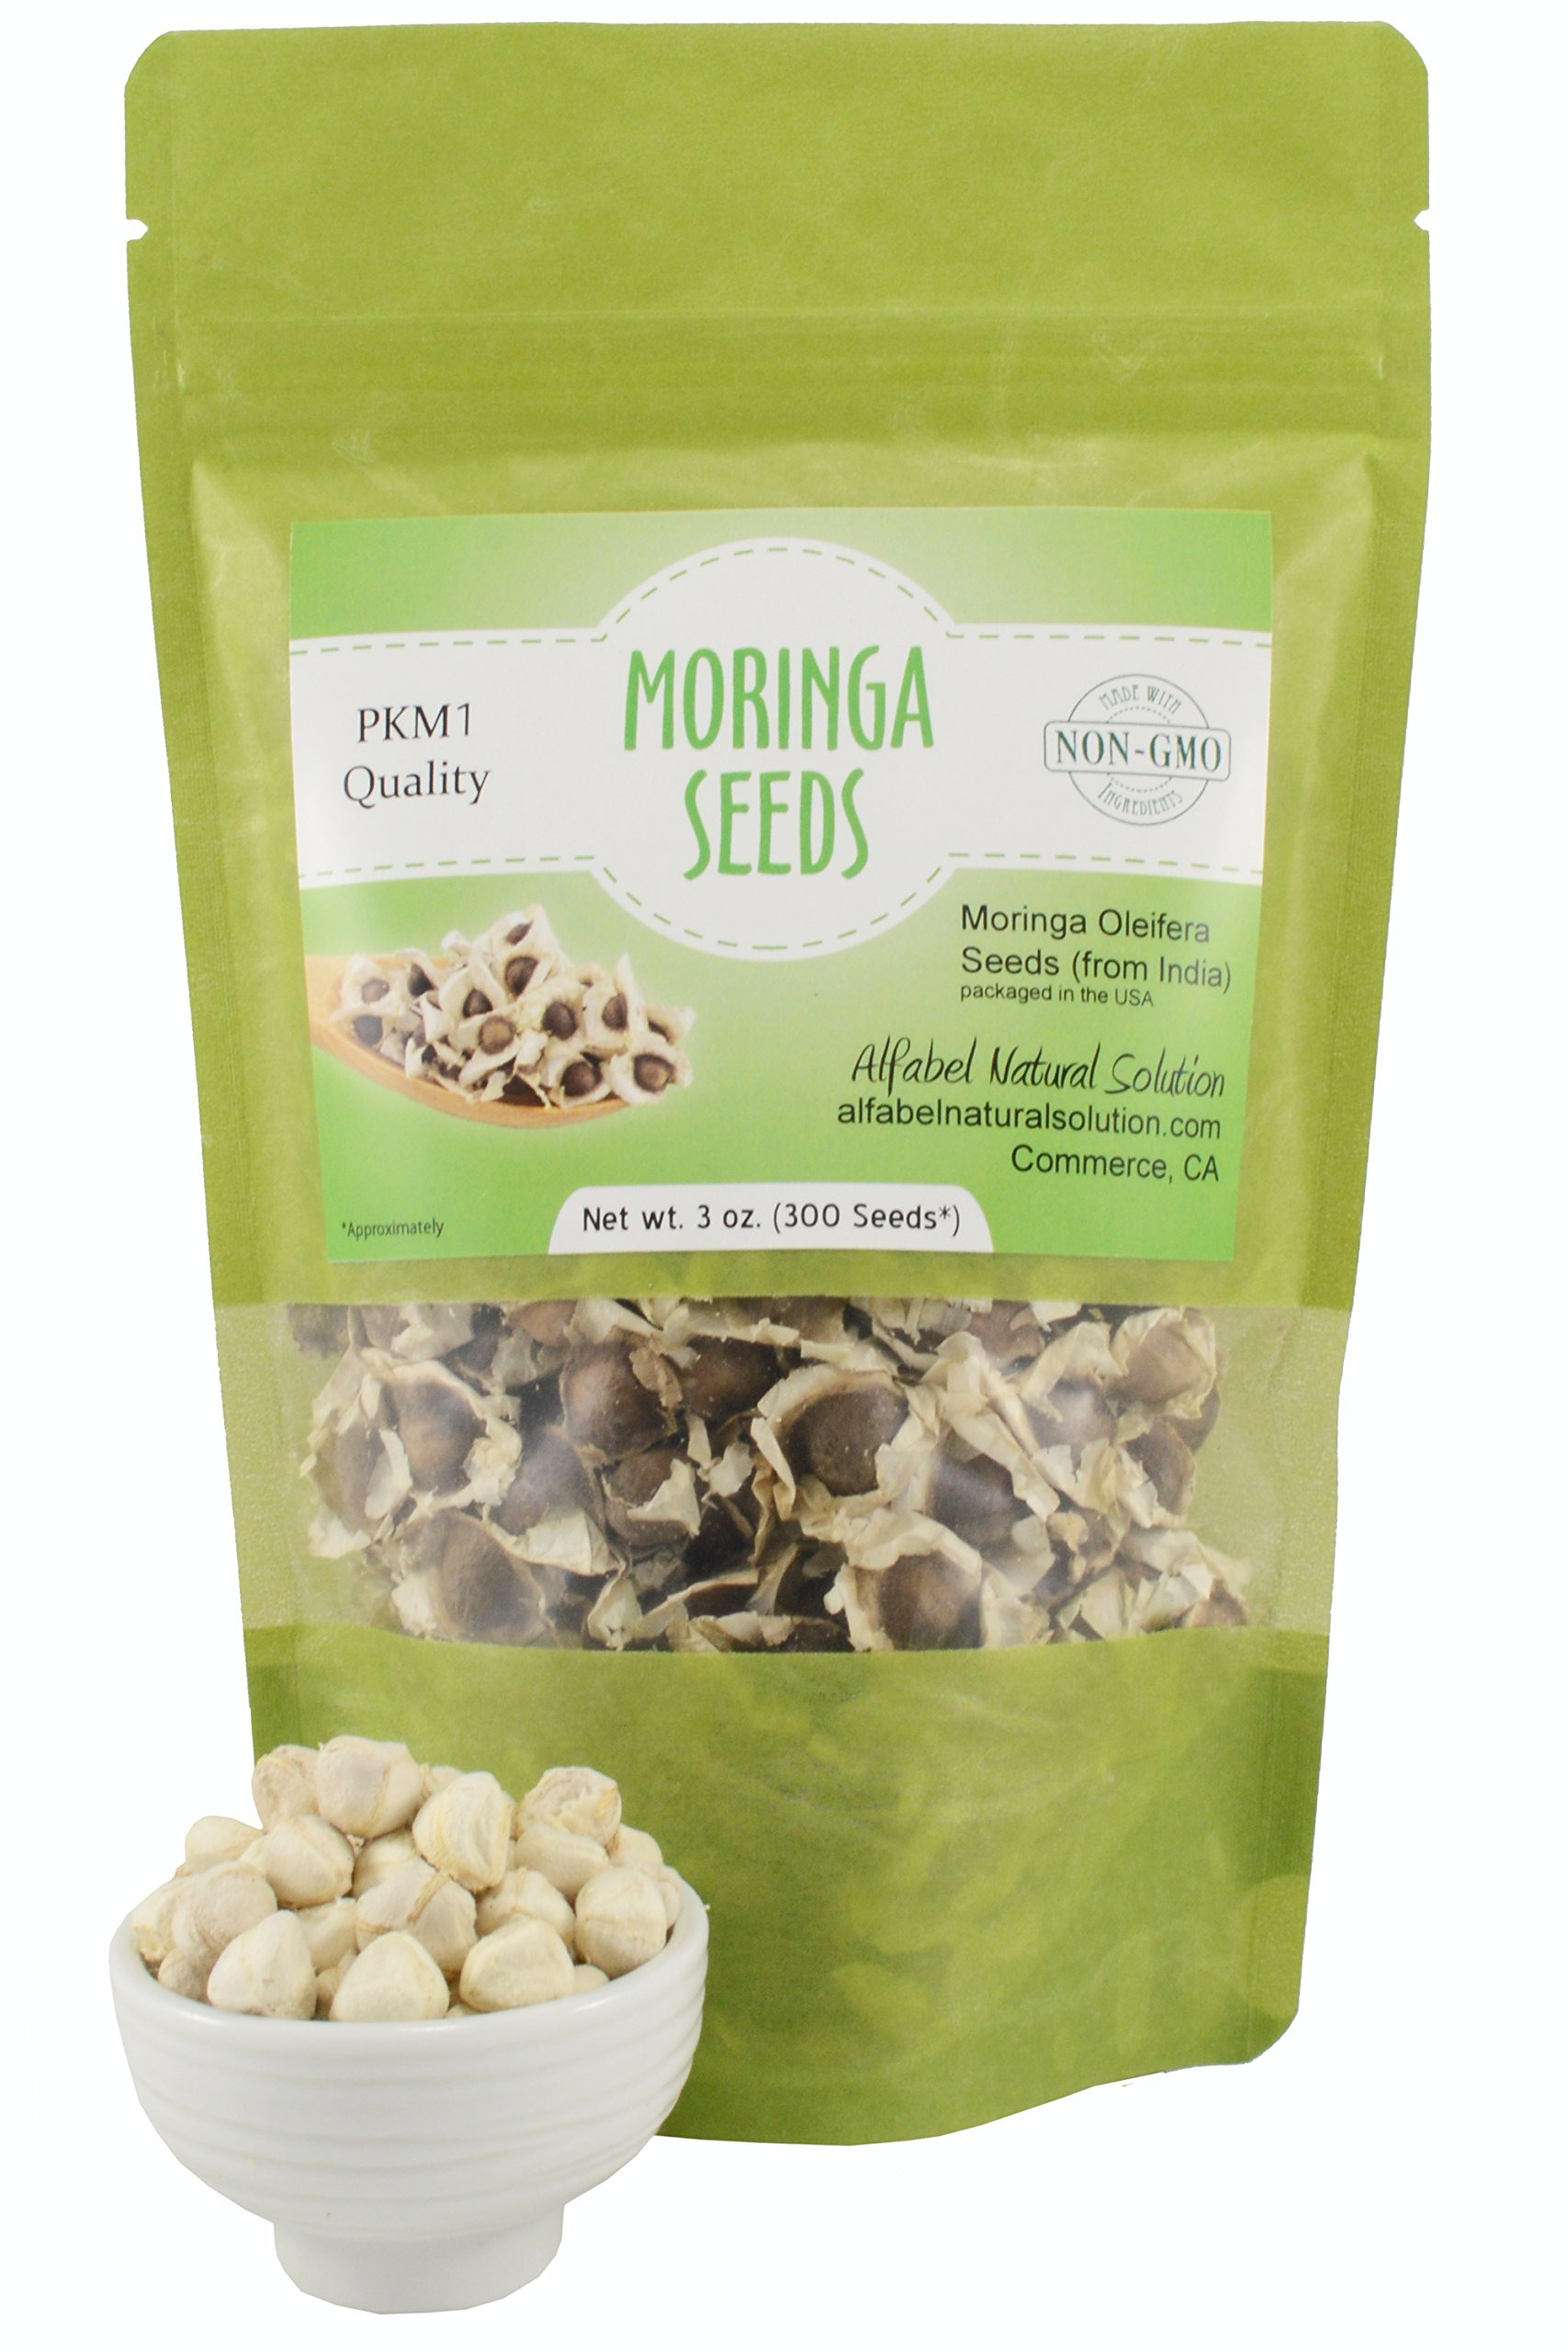 Moringa Oleifera Seeds Non-GMO PKM1 Premium Quality - Organically Grown - 3 oz. (300 Seeds Approximately) Resealable Stand Up Pouch